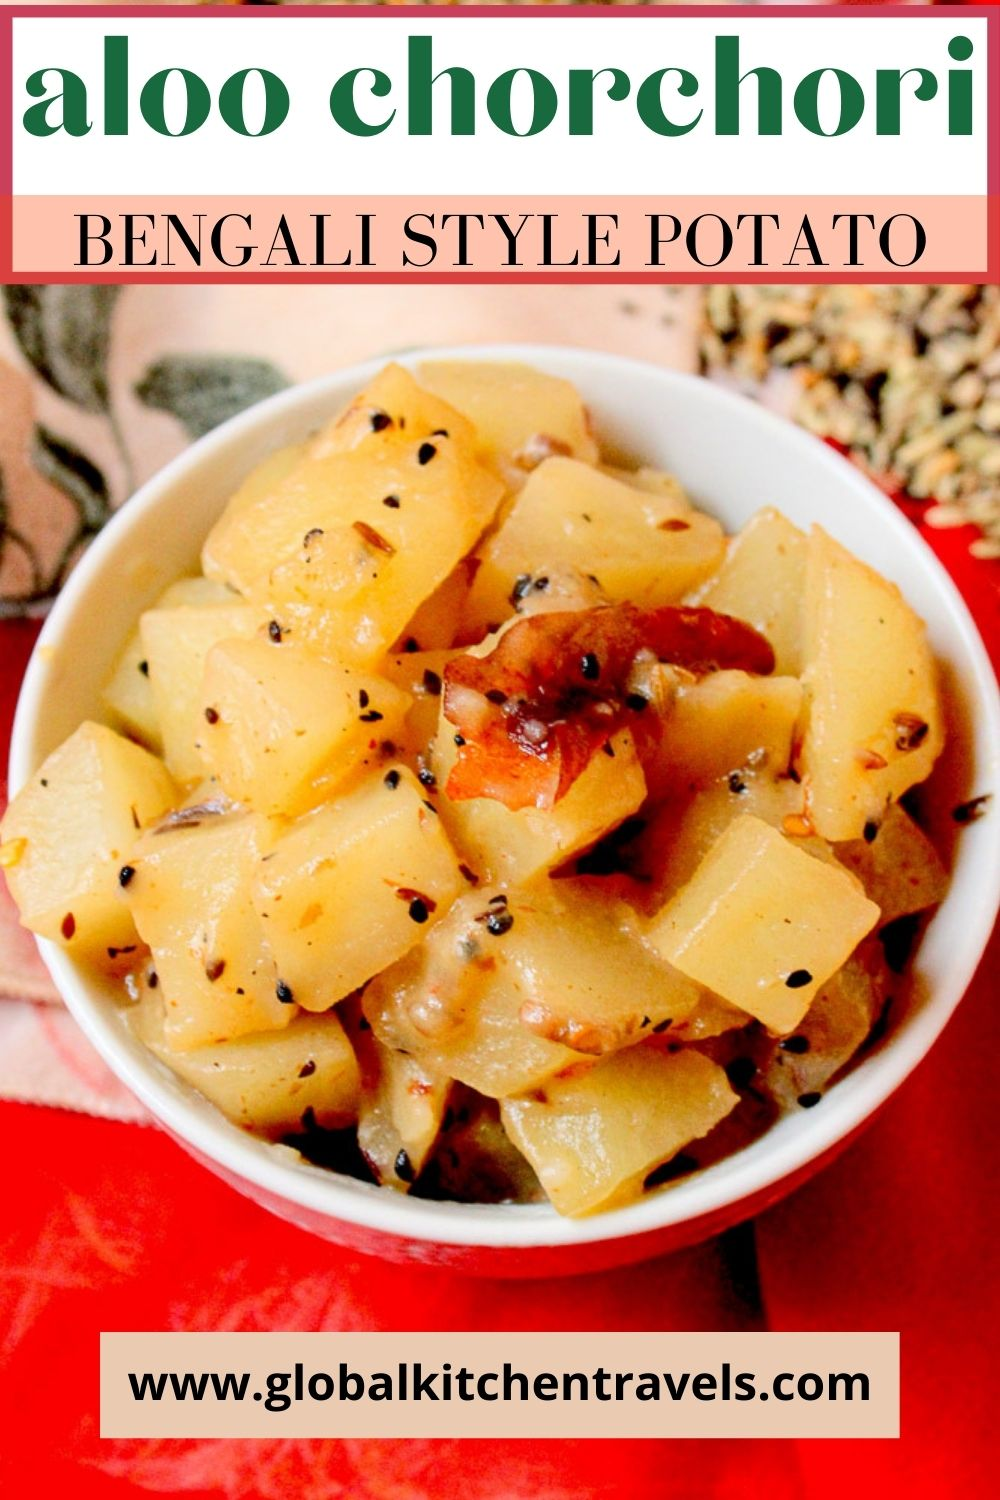 bowl of stir fried potatoes with text